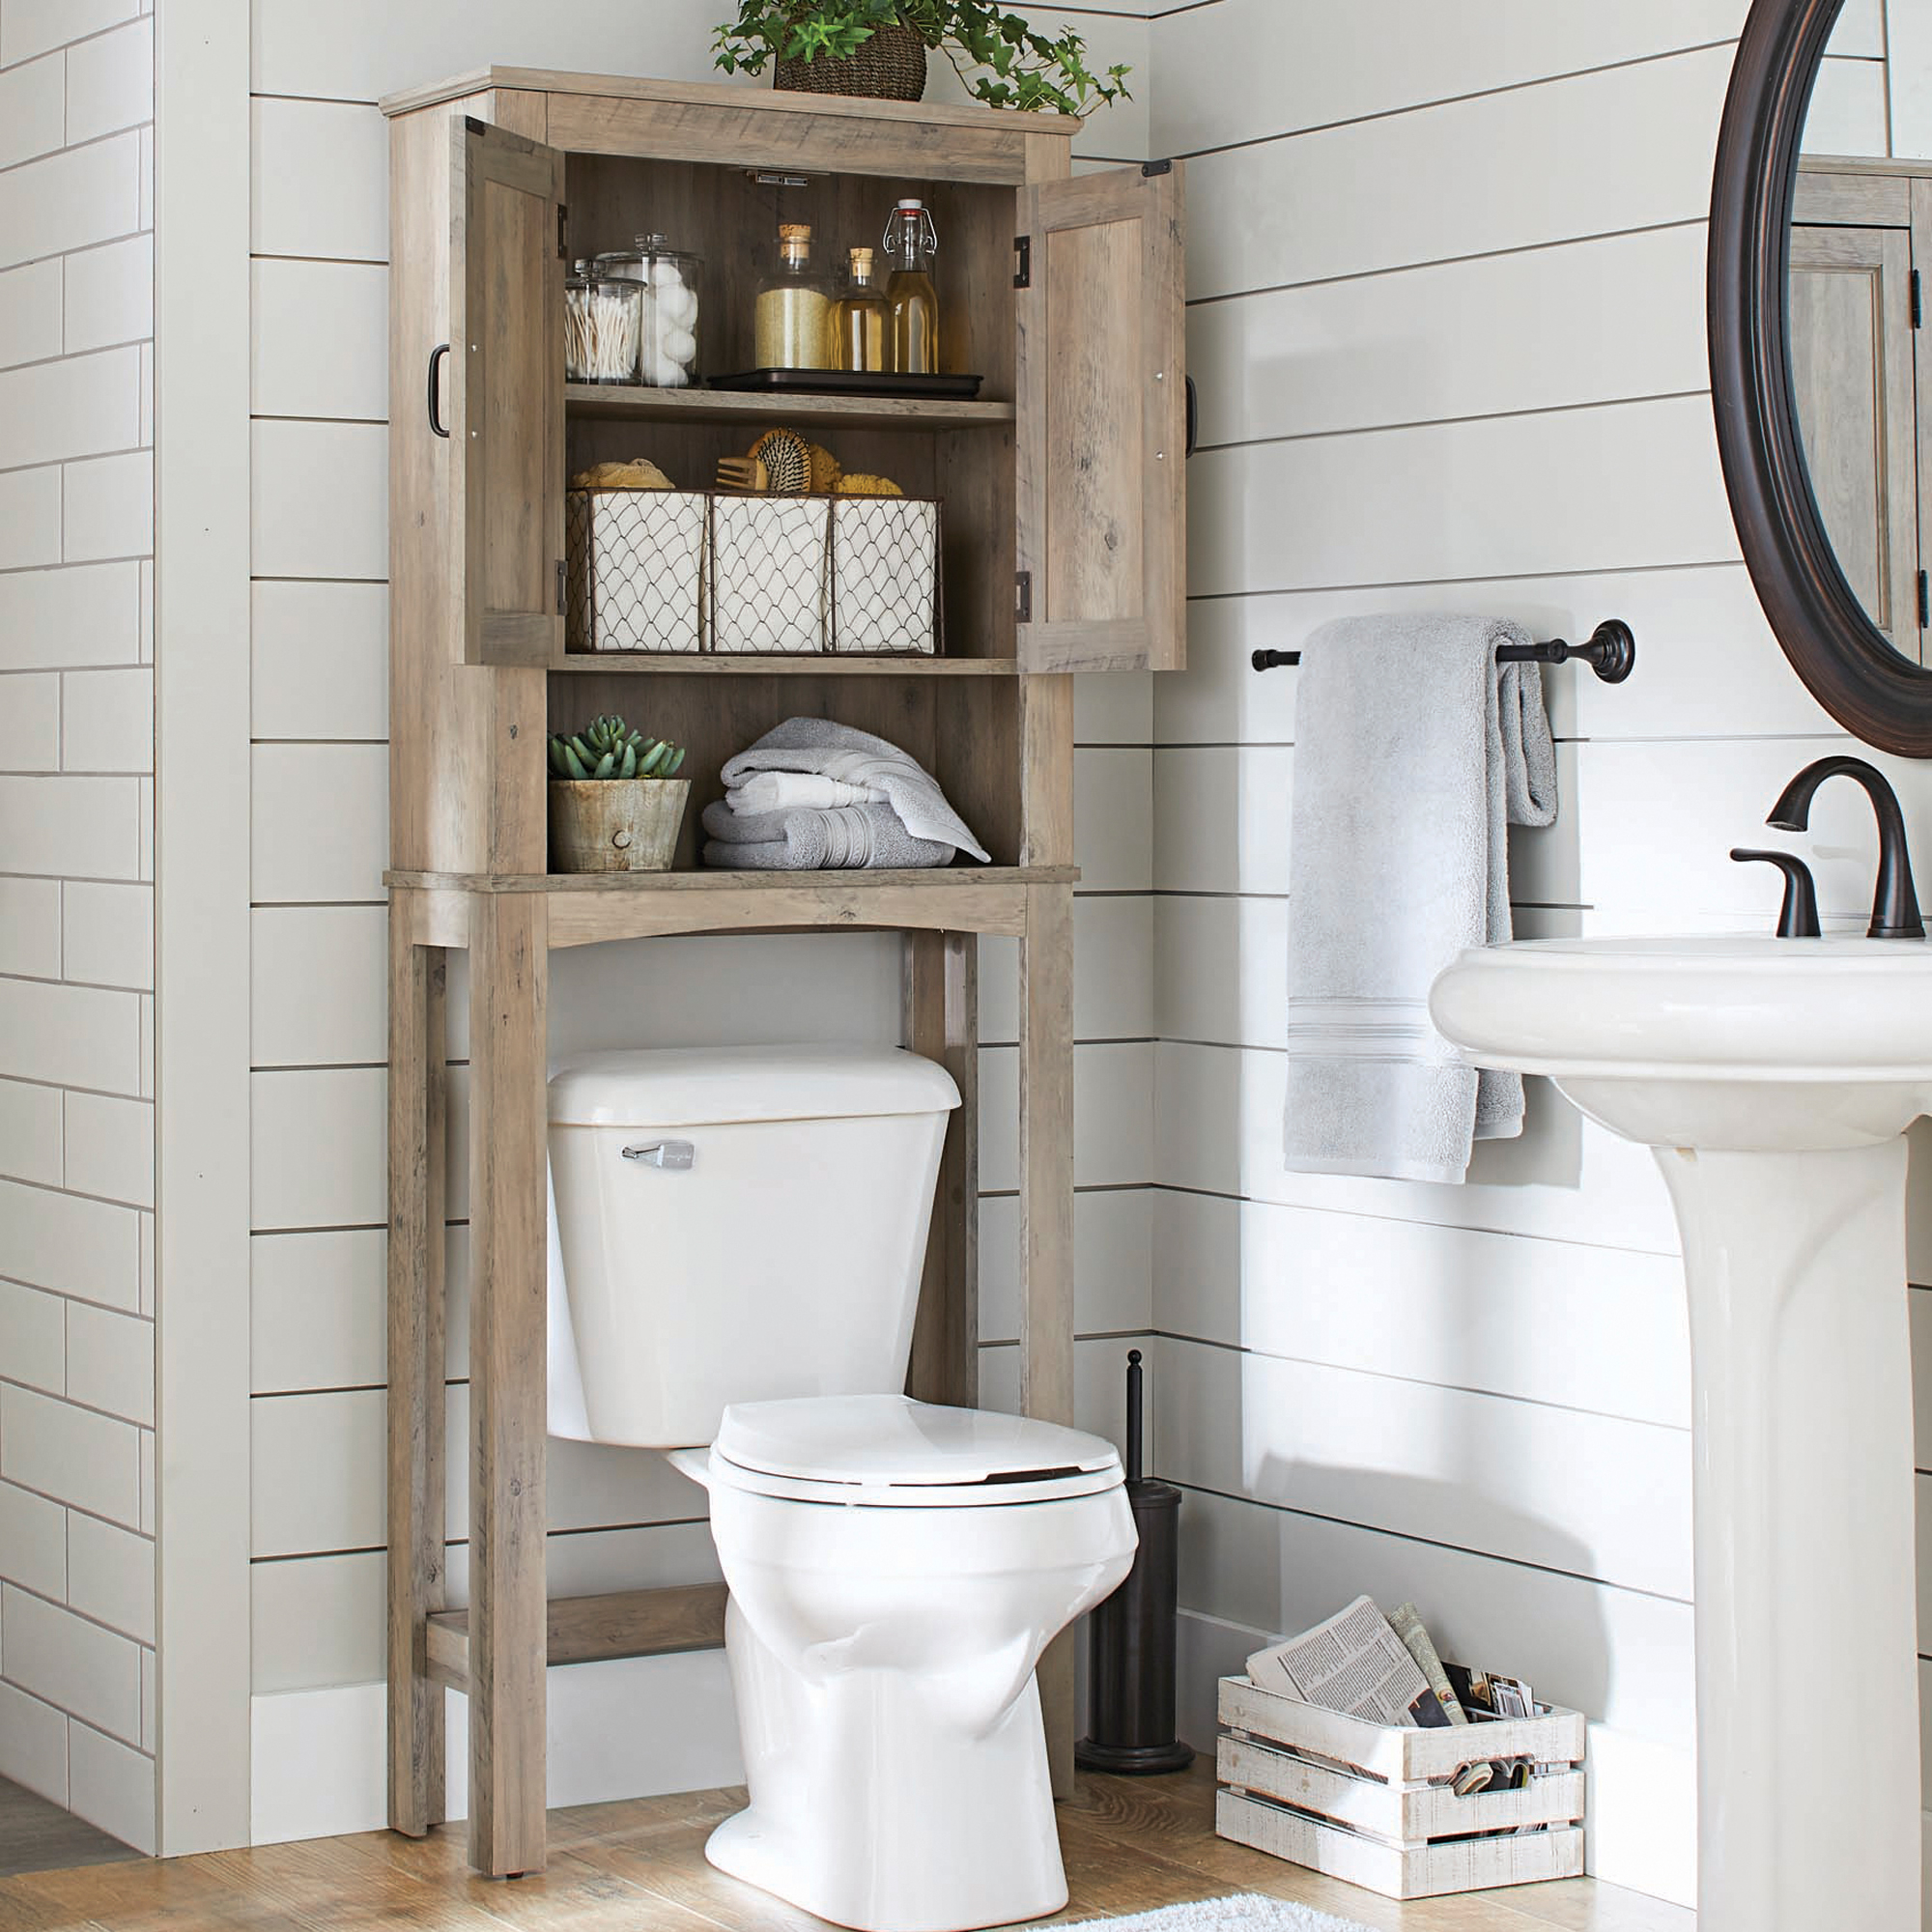 Better Homes Gardens Northampton Over The Toilet Bathroom Space Saver Rustic Gray Finish pertaining to sizing 2000 X 2000